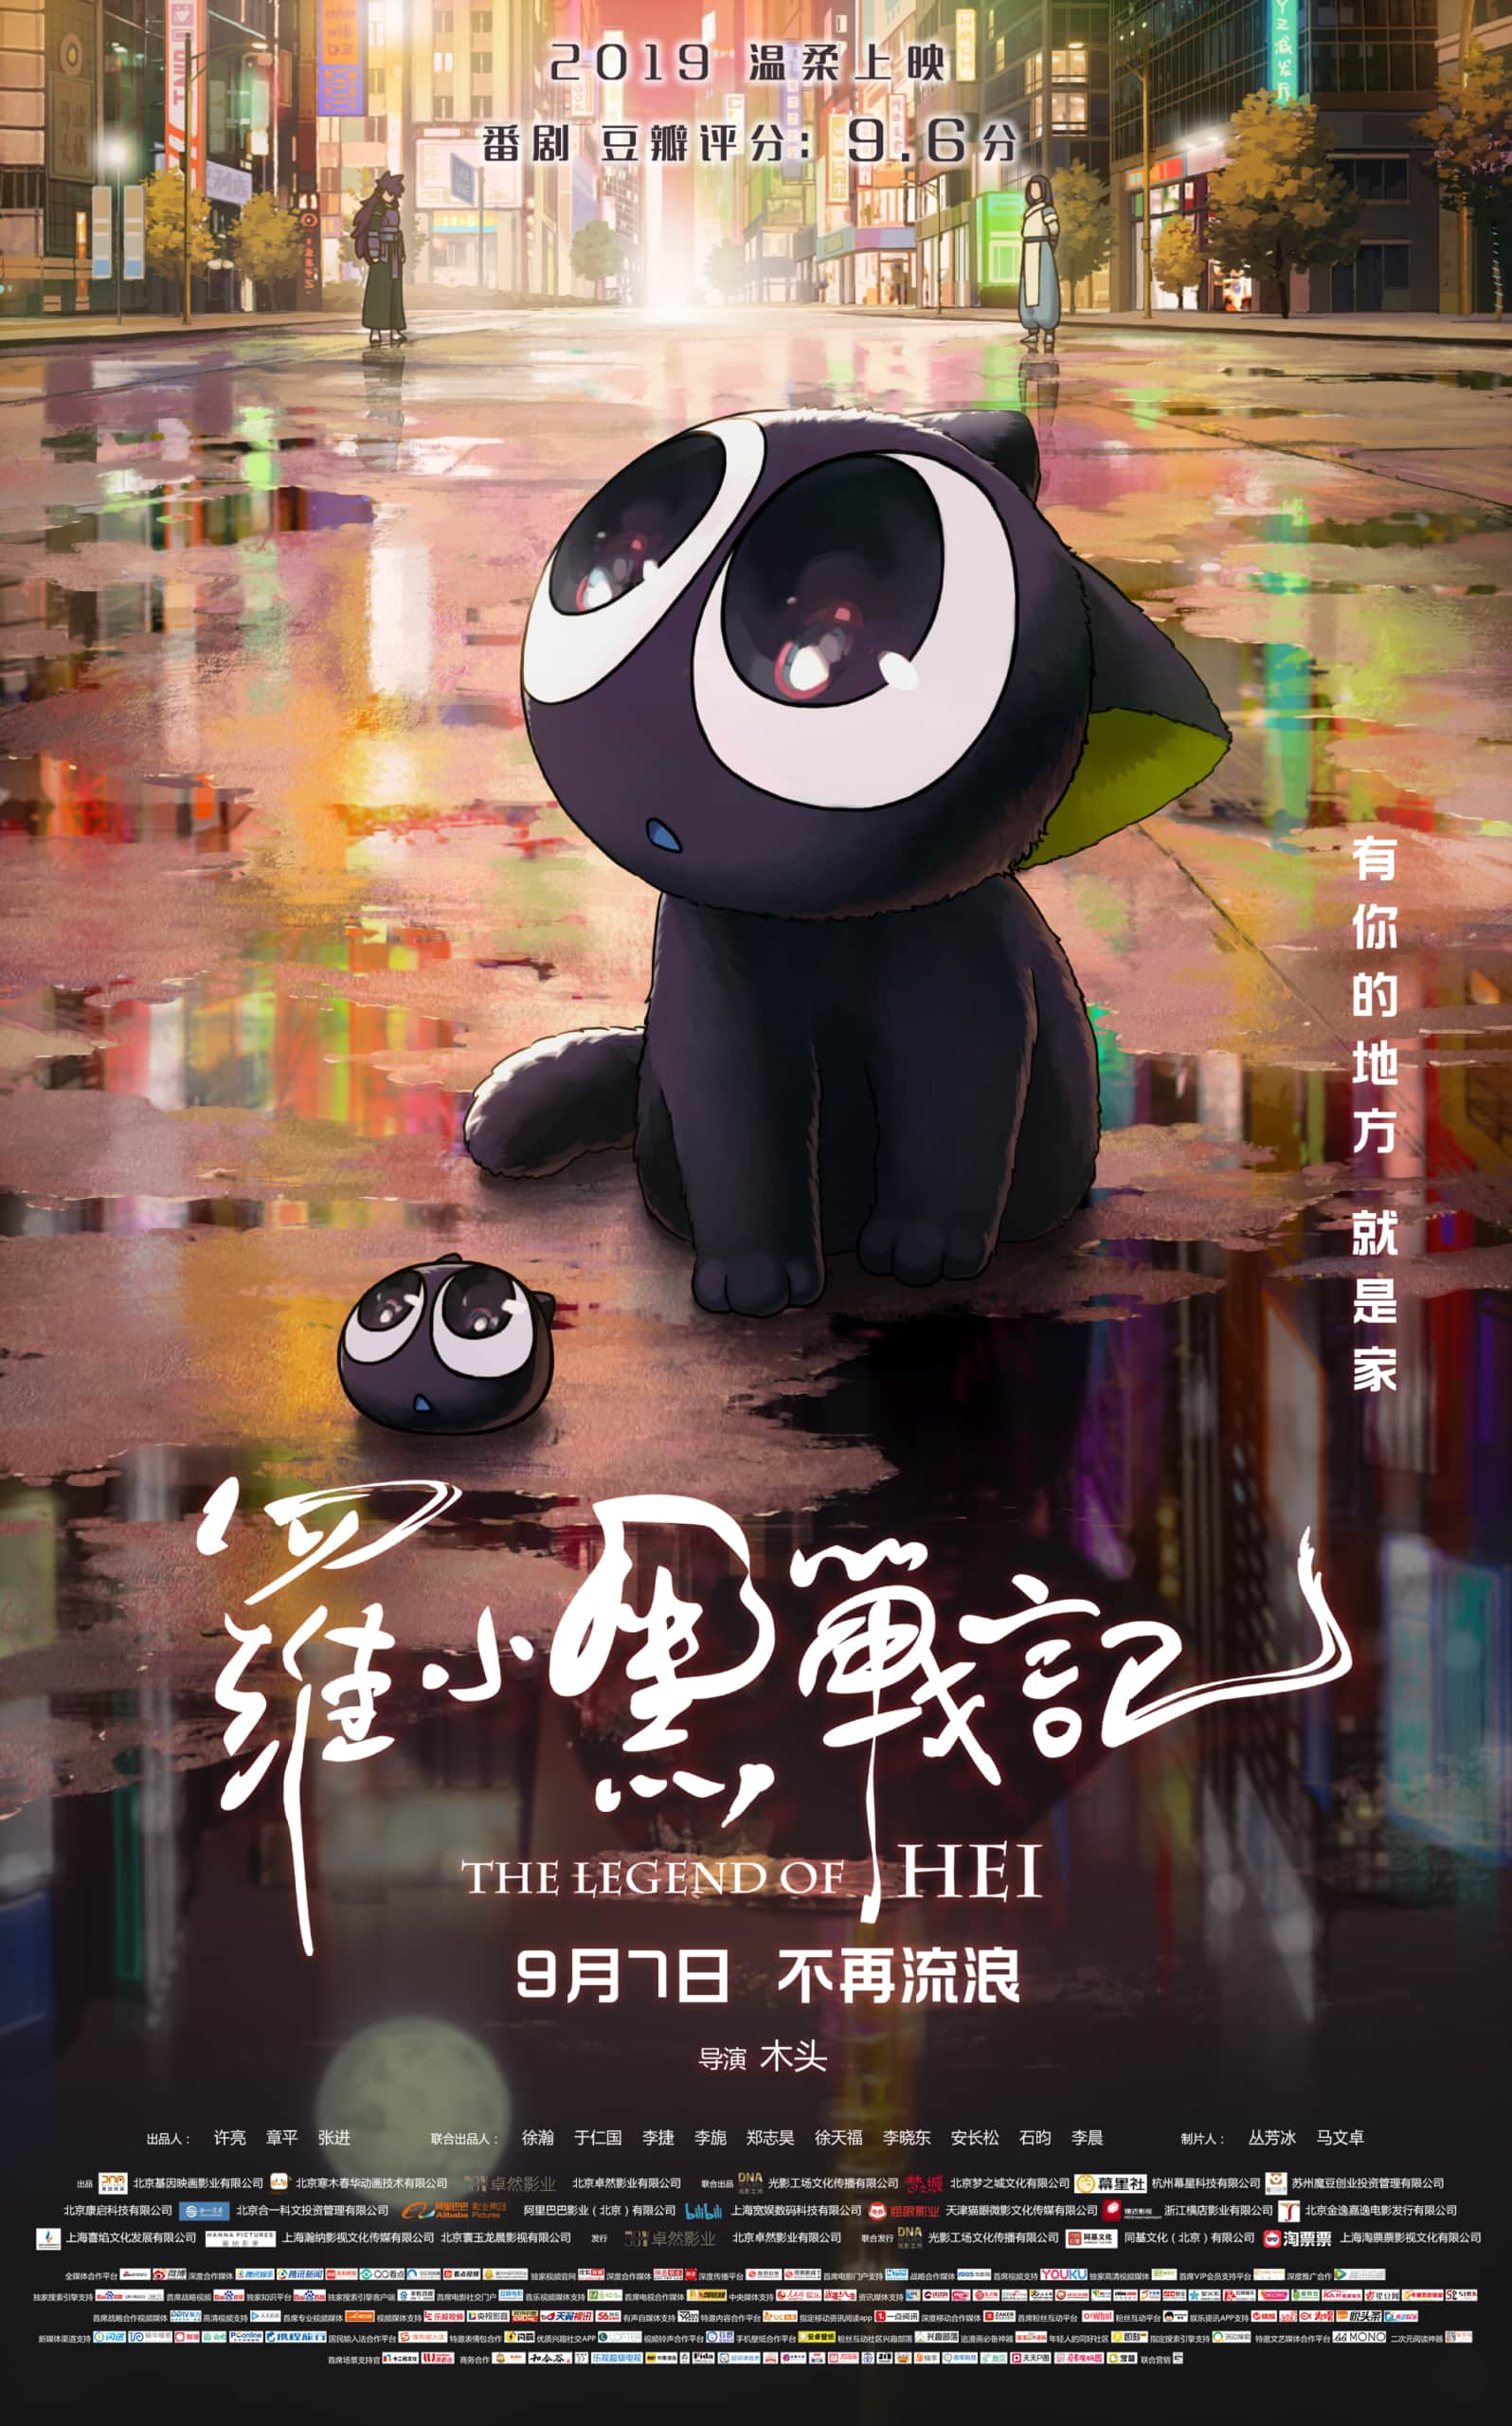 The Legend of Hei Poster